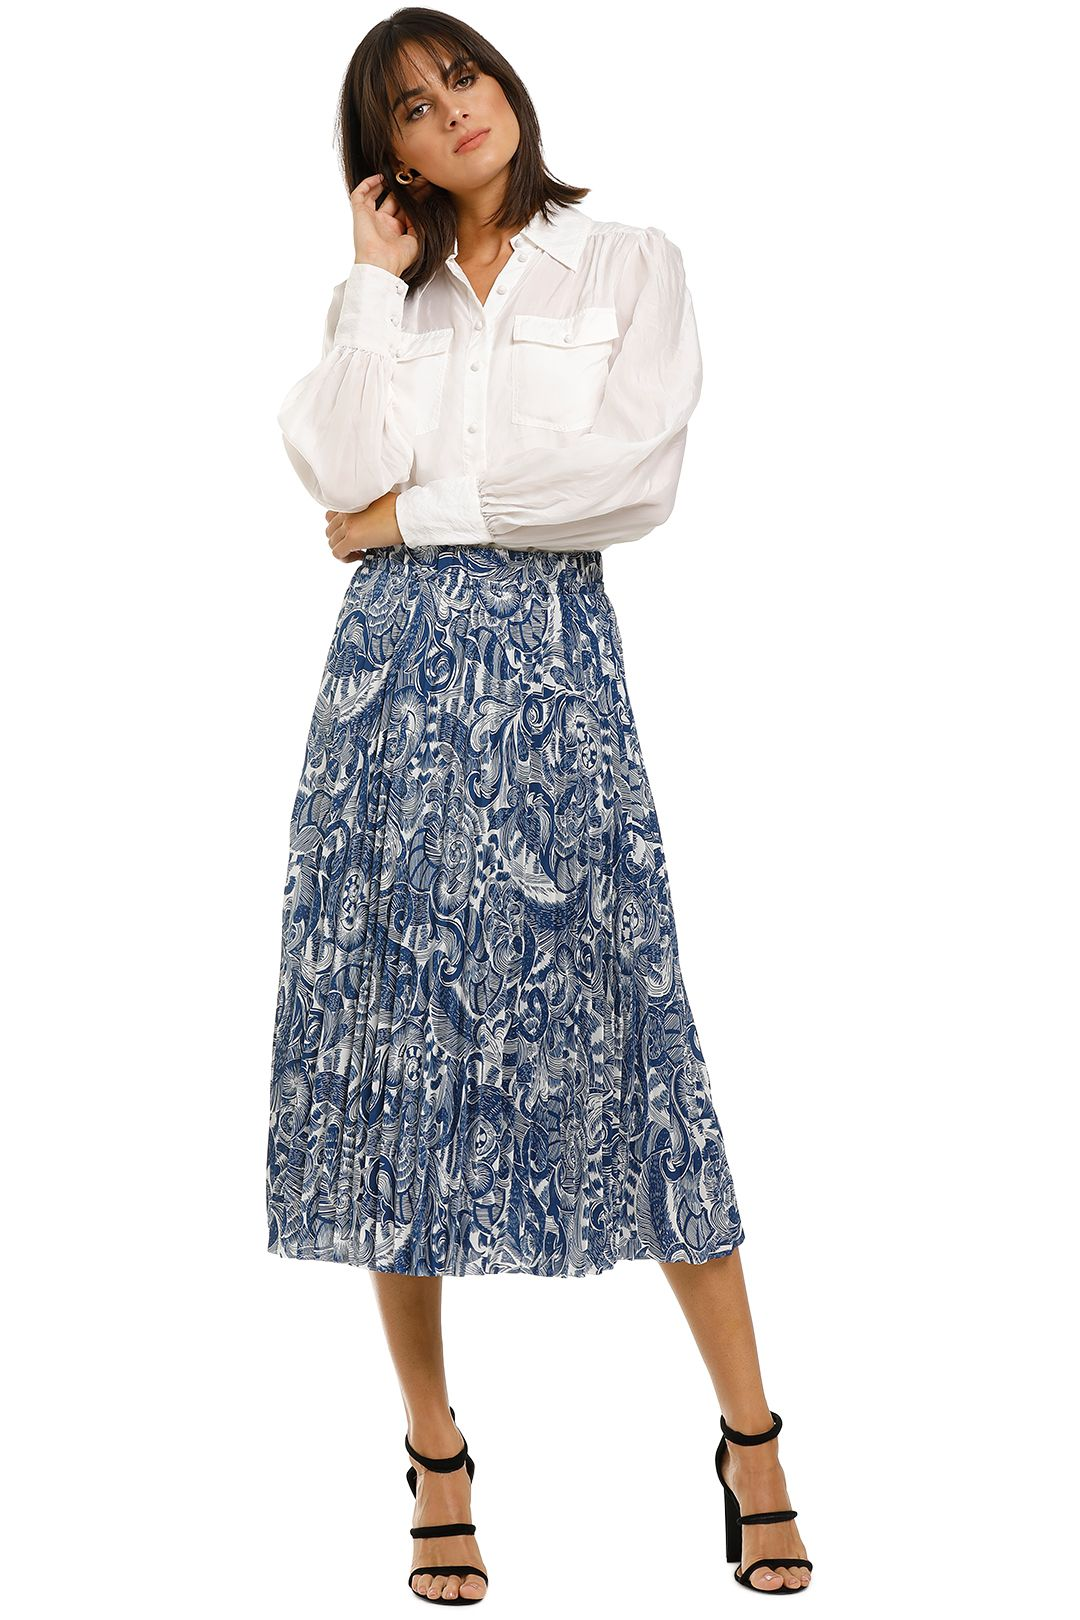 Countr-Road-Print-Pleat-Skirt-Deep-Blue-Front